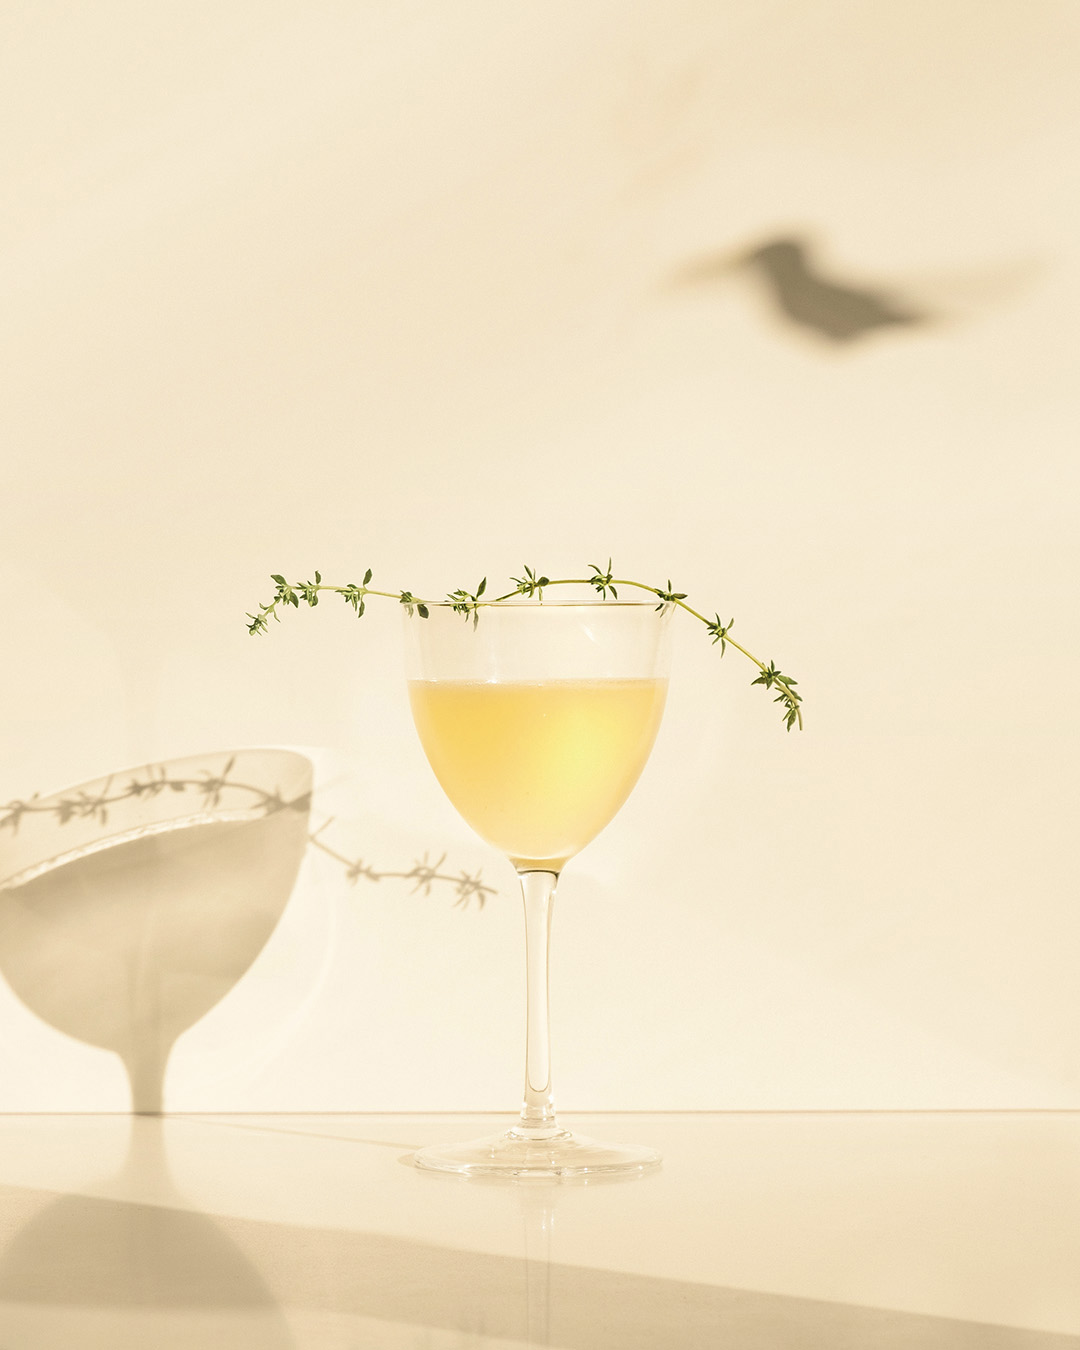 BEE'S KNEES   2  oz  Pomp & Whimsy ¾  oz  lemon juice ½  oz  honey syrup*   Combine in a cocktail shaker filled with ice and shake until chilled. Strain into a Nick and Nora glass.    Garnish with expressed lemon peel and a sprig of thyme that has been gently rubbed between the fingers to release its oils.    *Honey syrup is made with a 1:1 ratio of honey and water